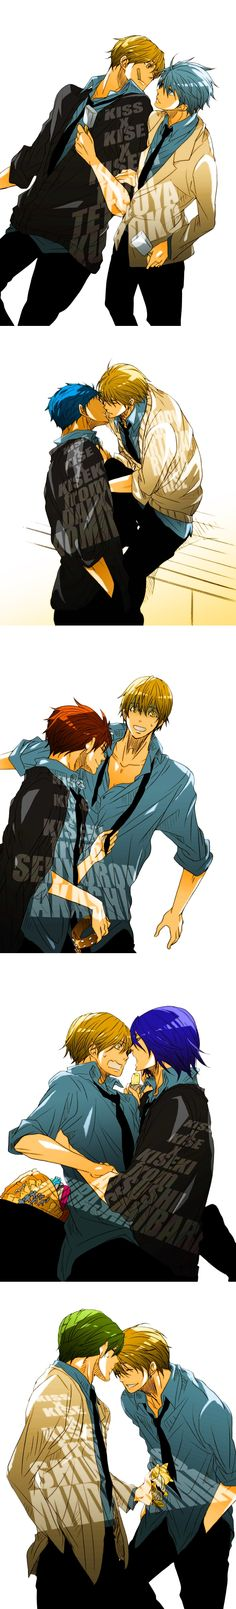 Kise... Ah~ I love this guy. And so does all the other Kiseki members, too, I guess! ^_^;;